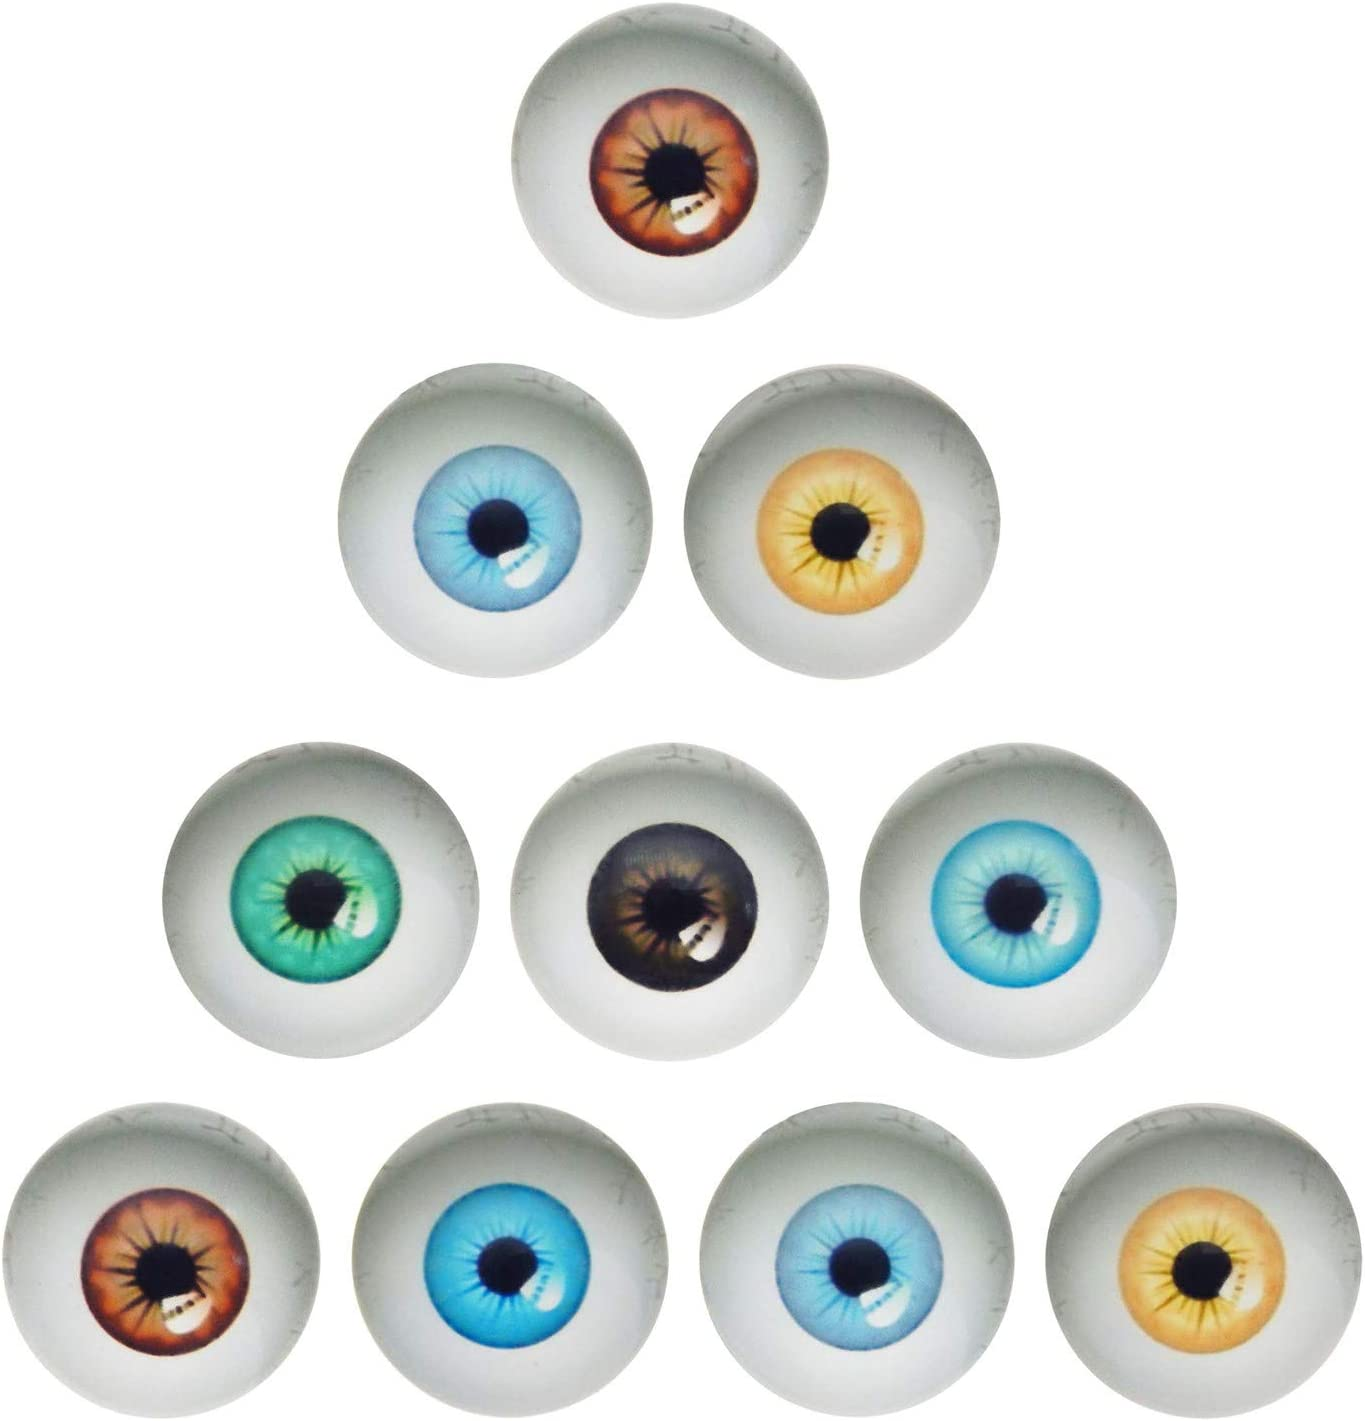 10 Pairs 30mm Dome Glass Human Eyes for Art Dolls Sculptures Props Masks Fursuits Jewelry Making Taxidermy Flatback